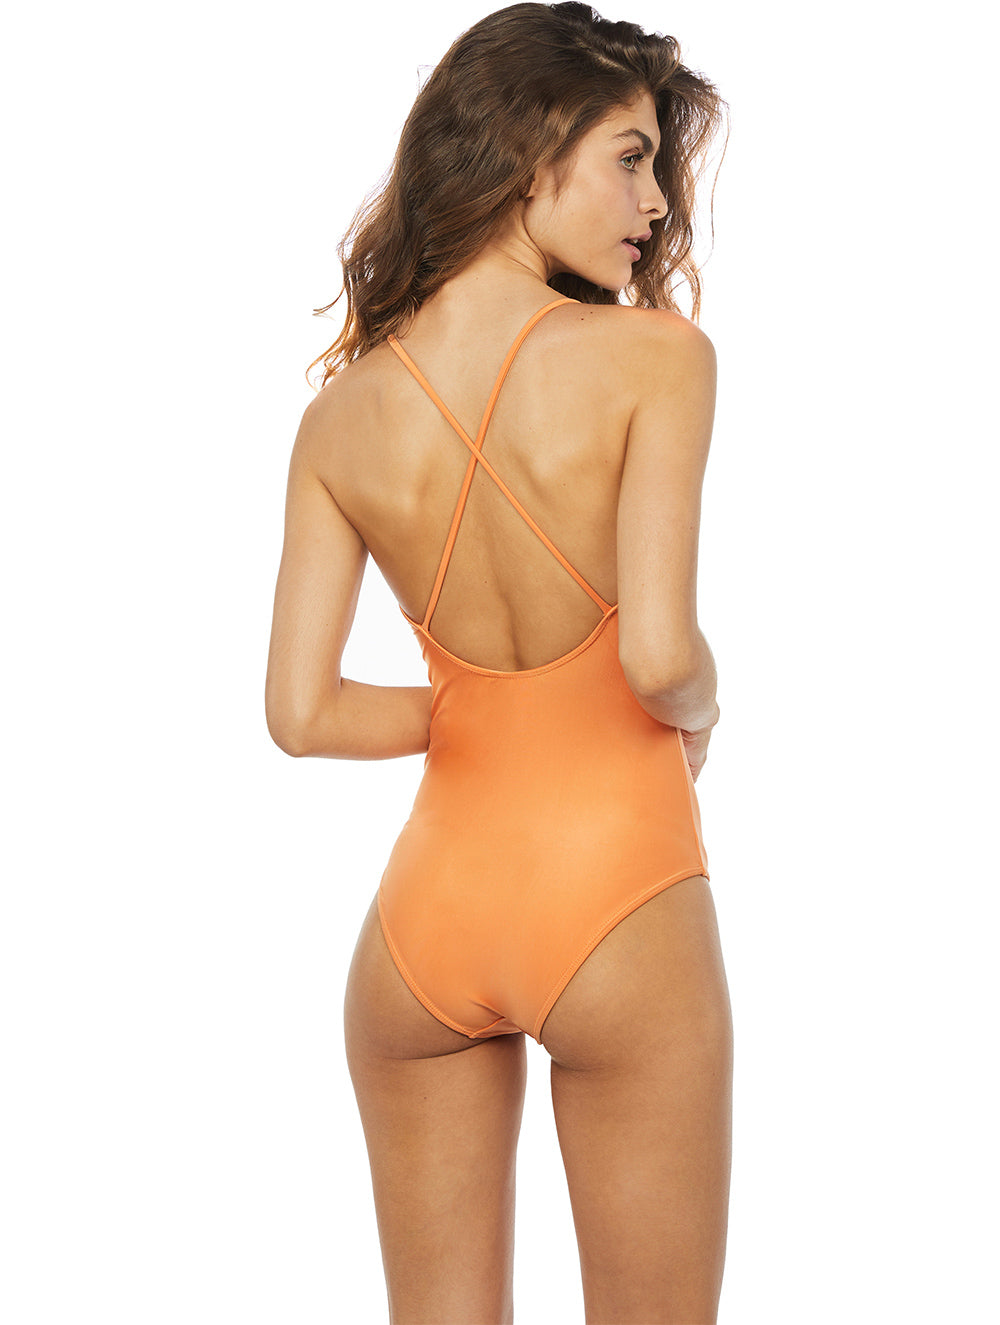 Ametista One-piece with Embroidery